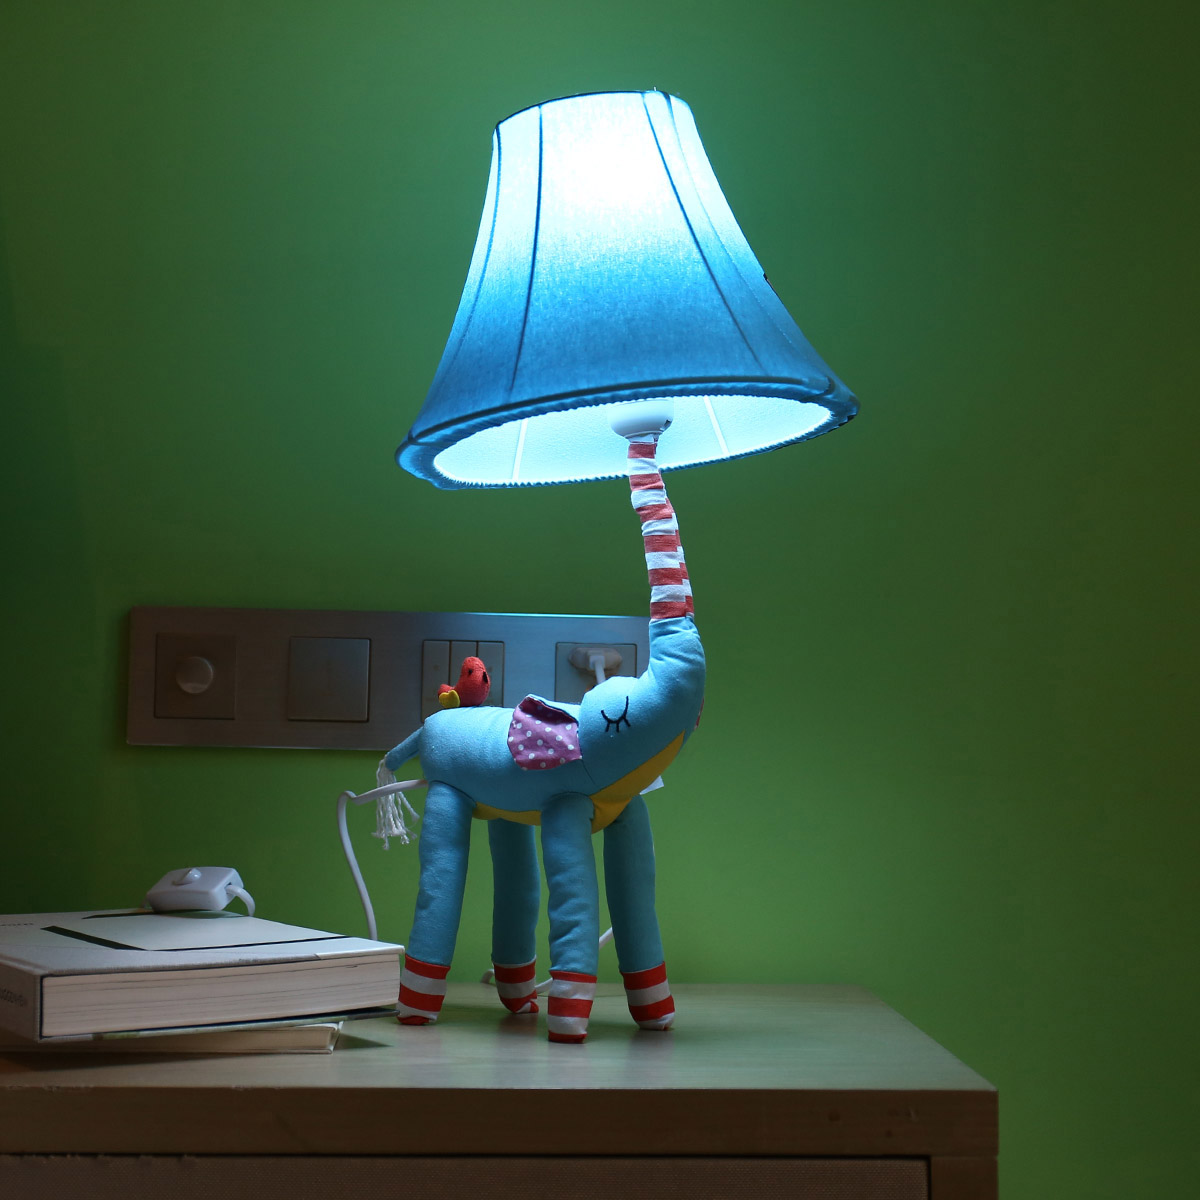 Blue Elephant figurine Lamp Animal figurine Lamp Table Lamp Night Light for Kids Lampshade Bedroom Nursery Room without Led Bulb 5